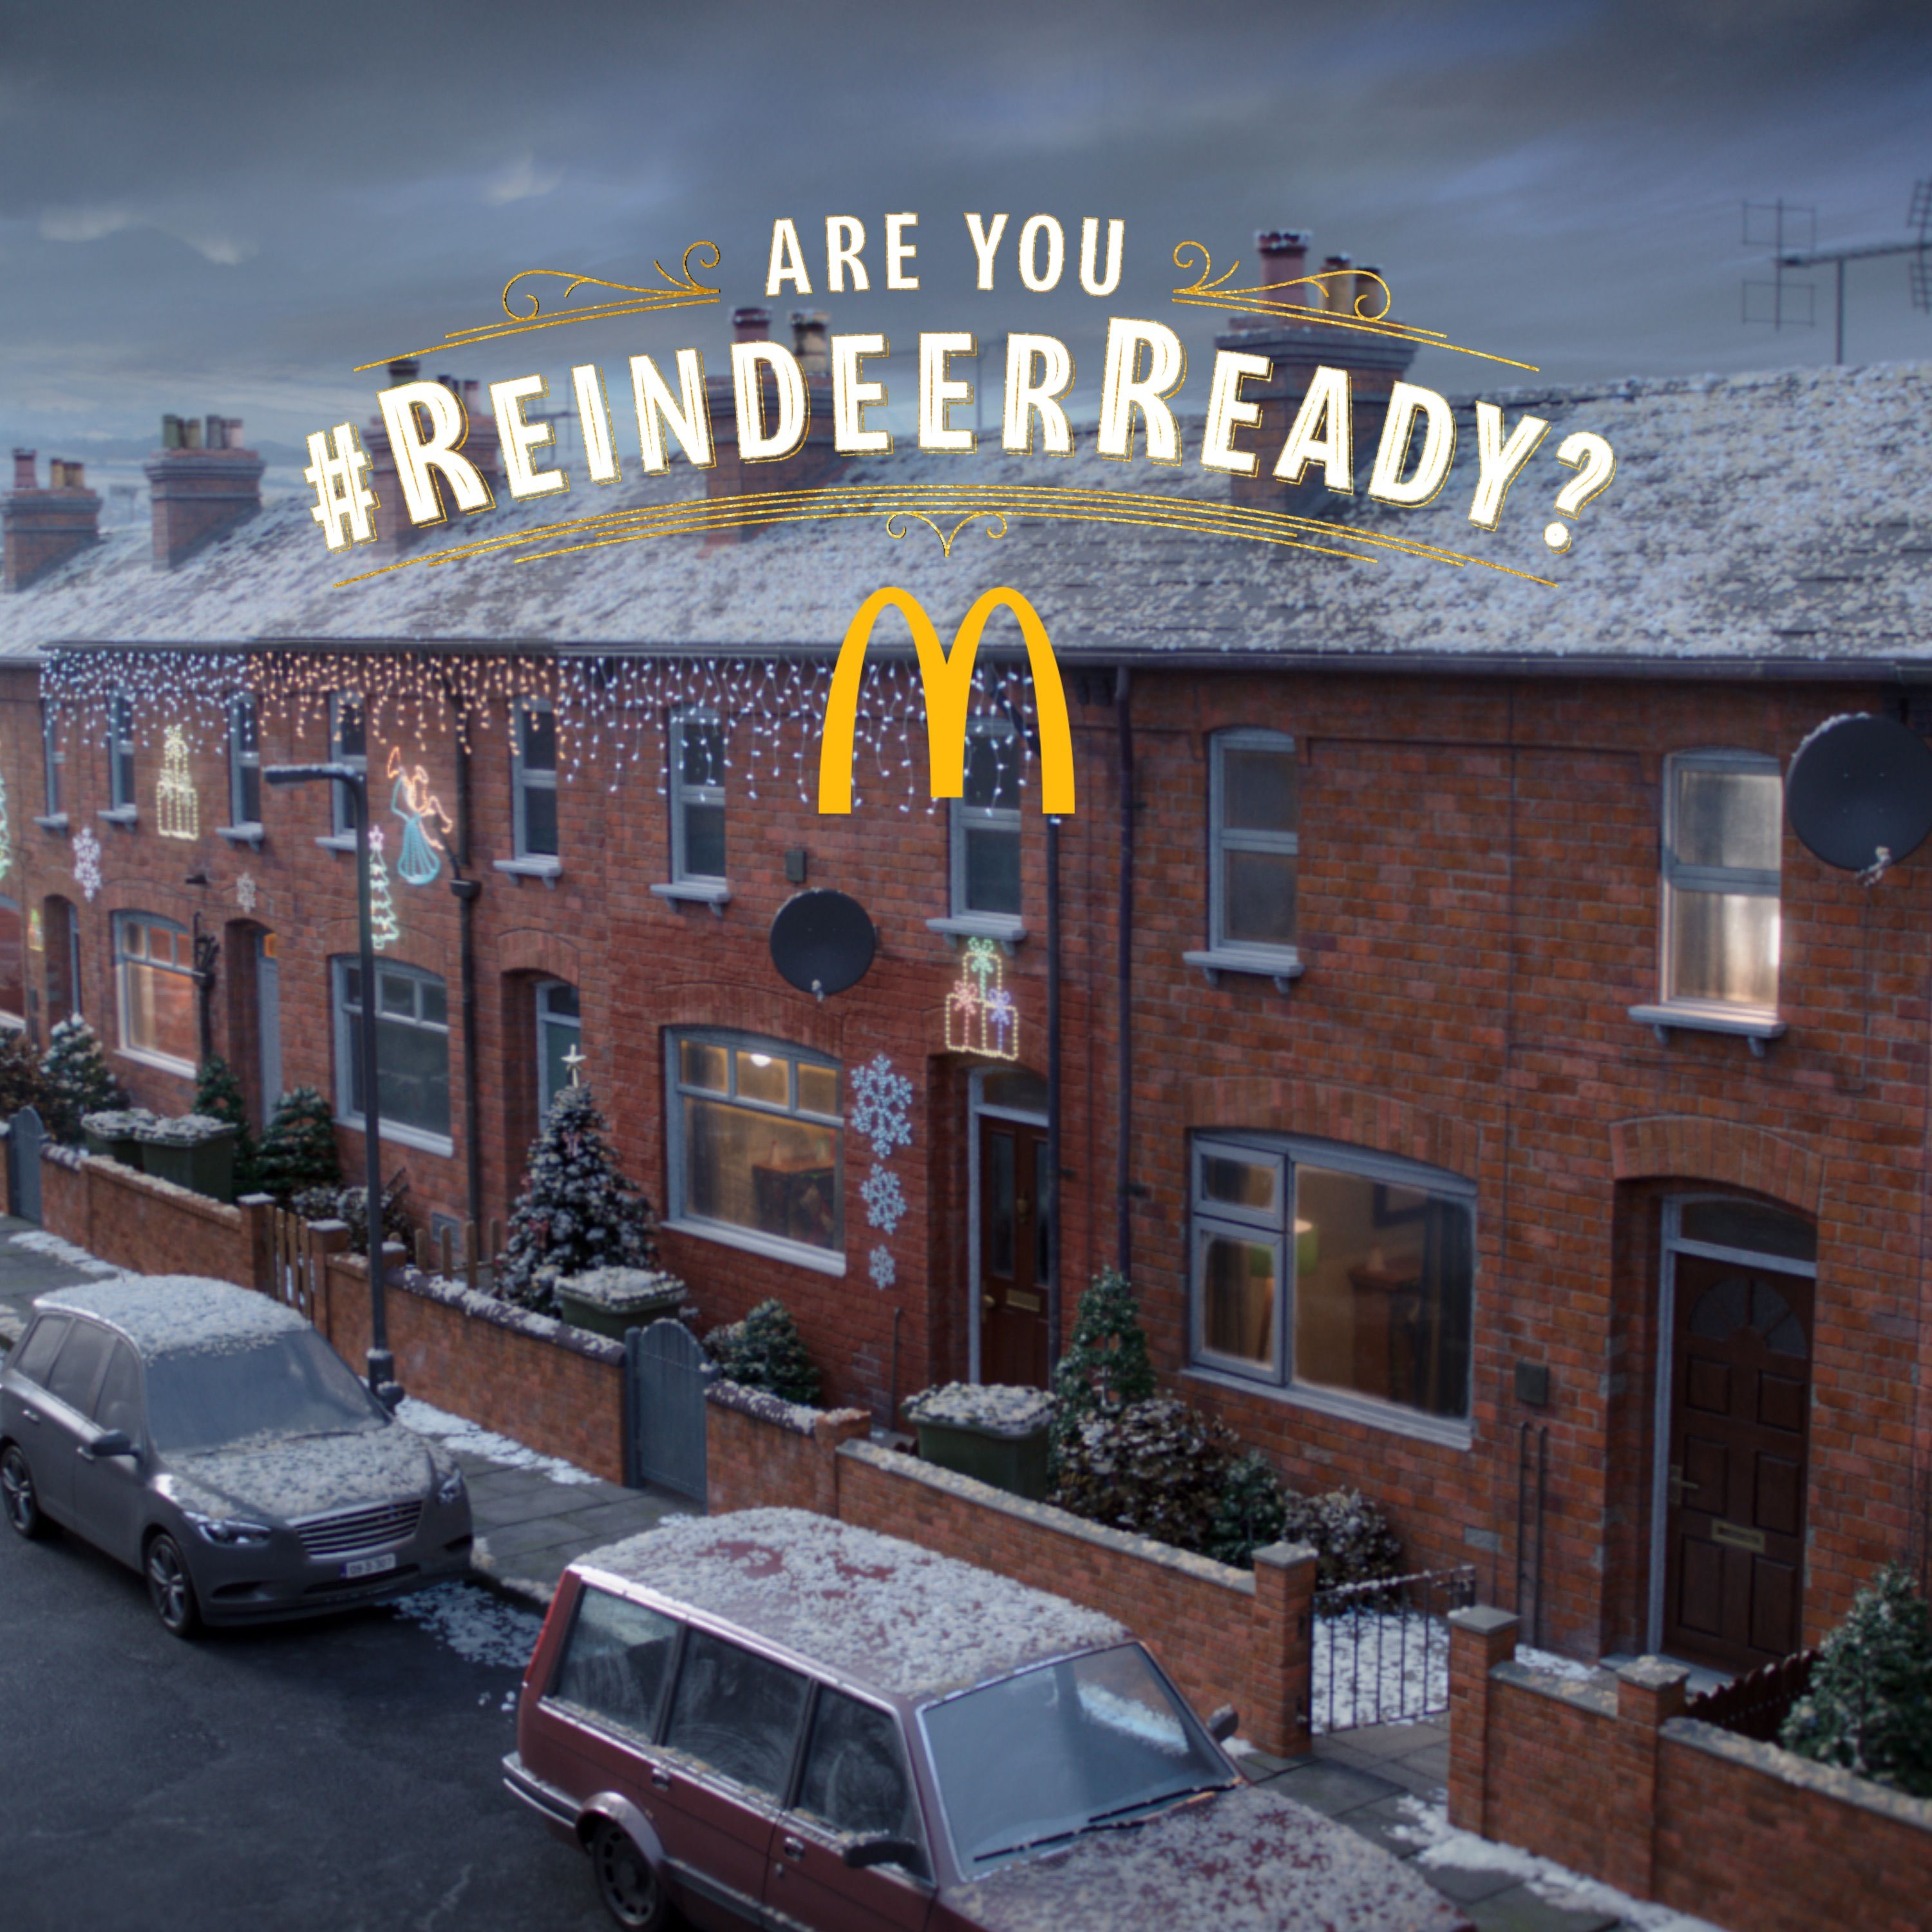 McDonald's Christmas Advert introduces Archie the Reindeer in festive 'Reindeer Ready' campaign